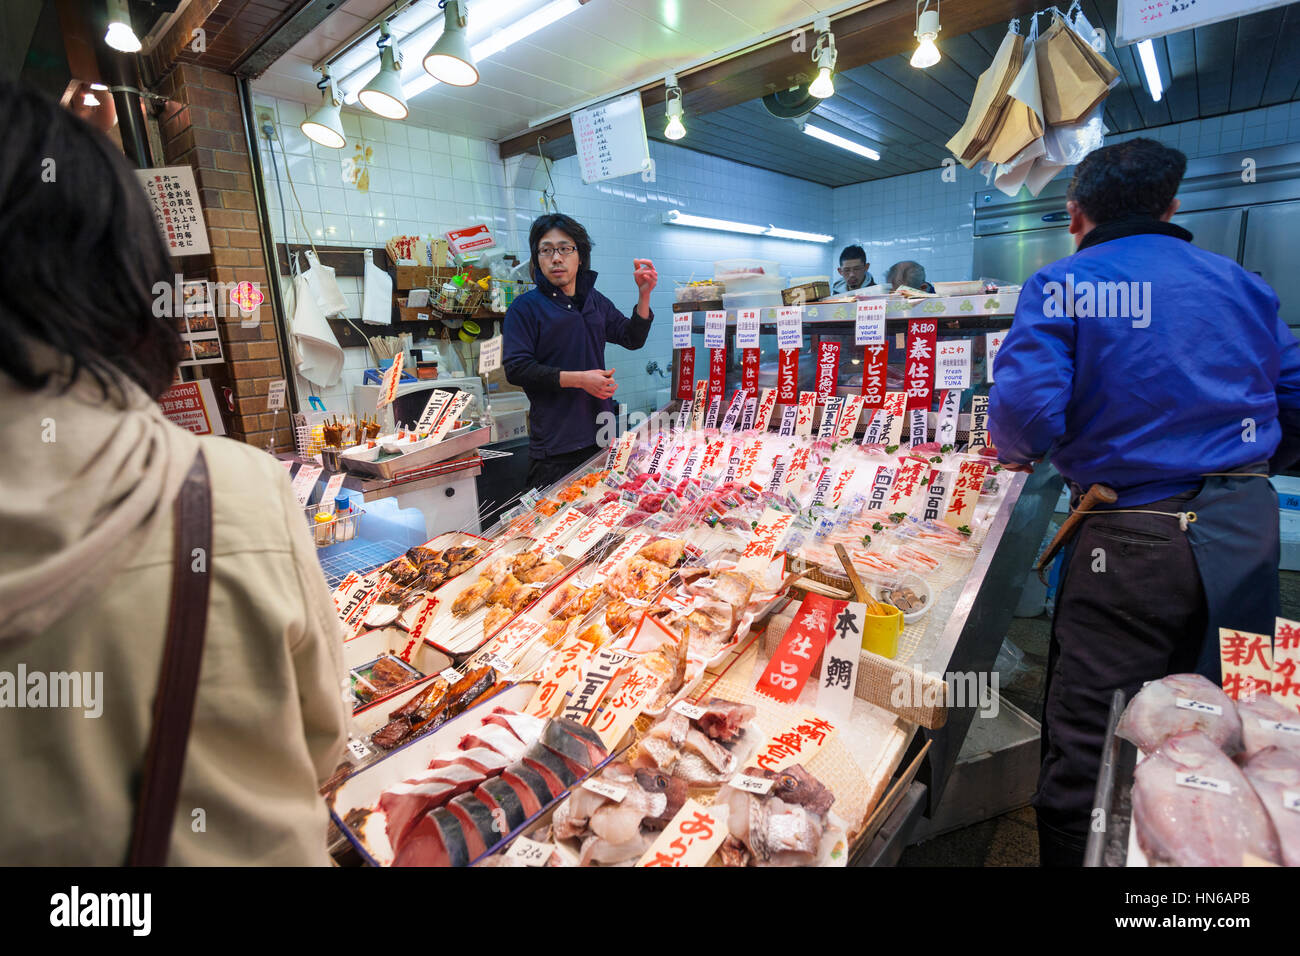 KYOTO, JAPAN - MARCH 23: Staff and customers at a stall selling fish in Nishiki food market in Central Kyoto on - Stock Image